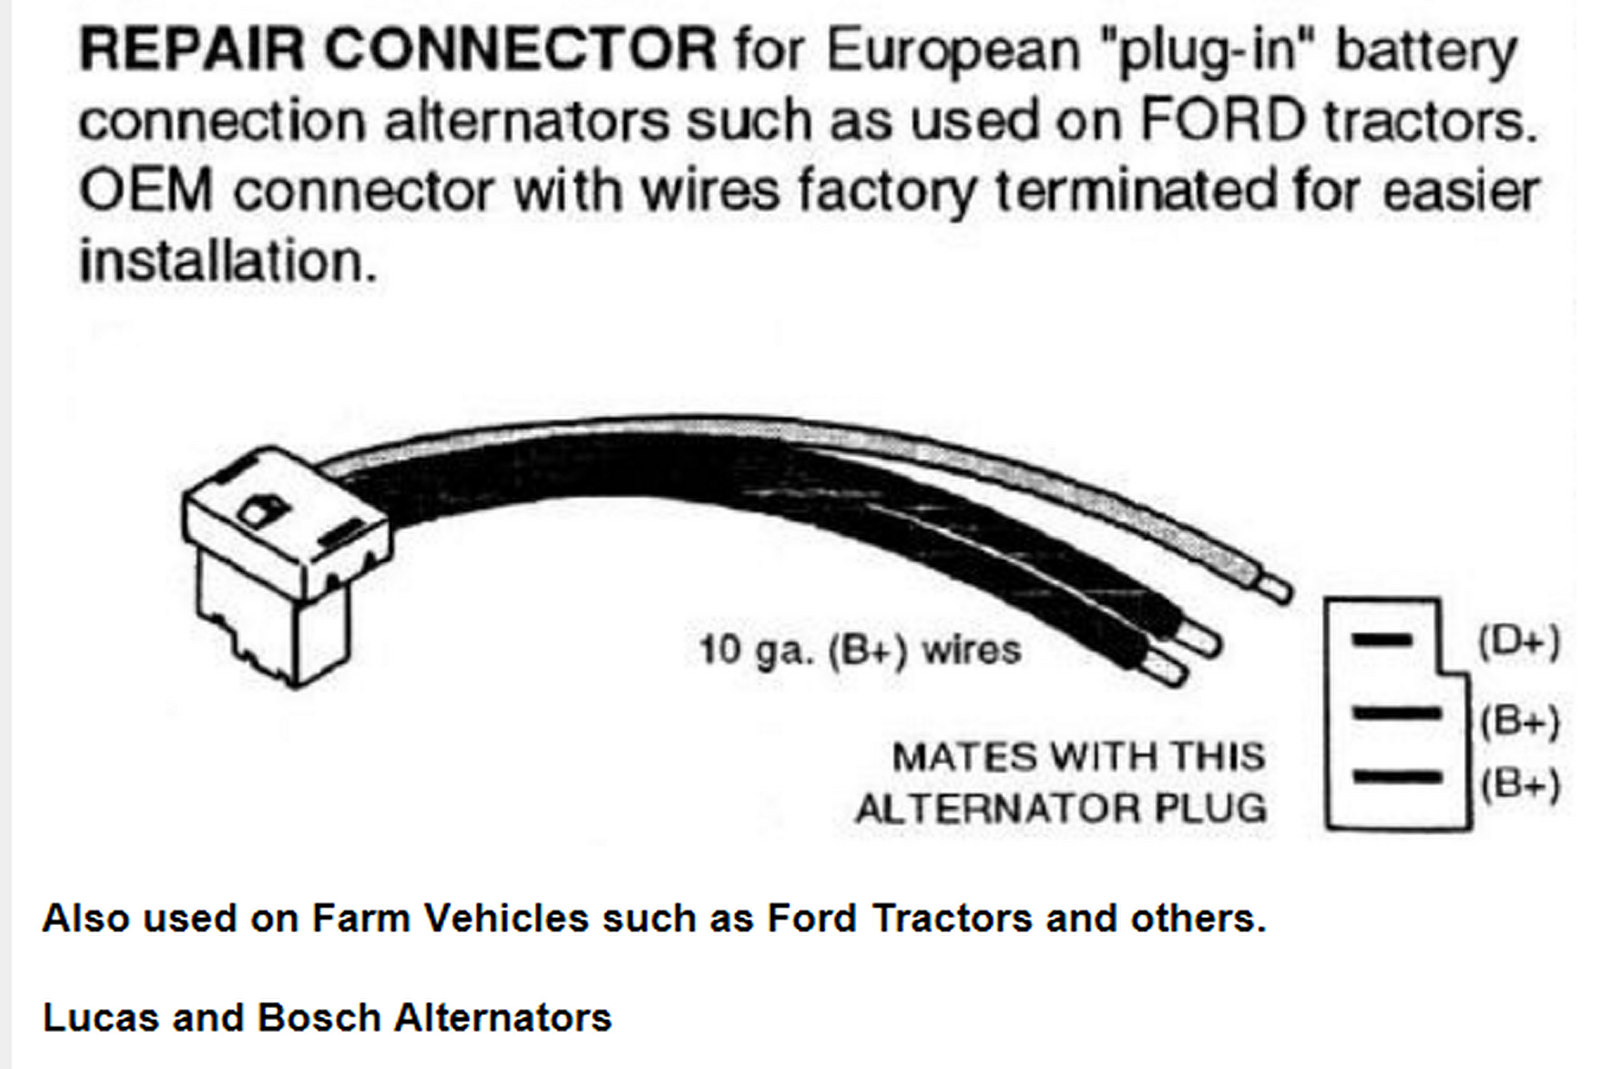 Alternator Plug Wiring Diagram Libraries Qr25 Color Wire Electrical Instruments By Lotuselan Netlucas Alt Connection Copy And